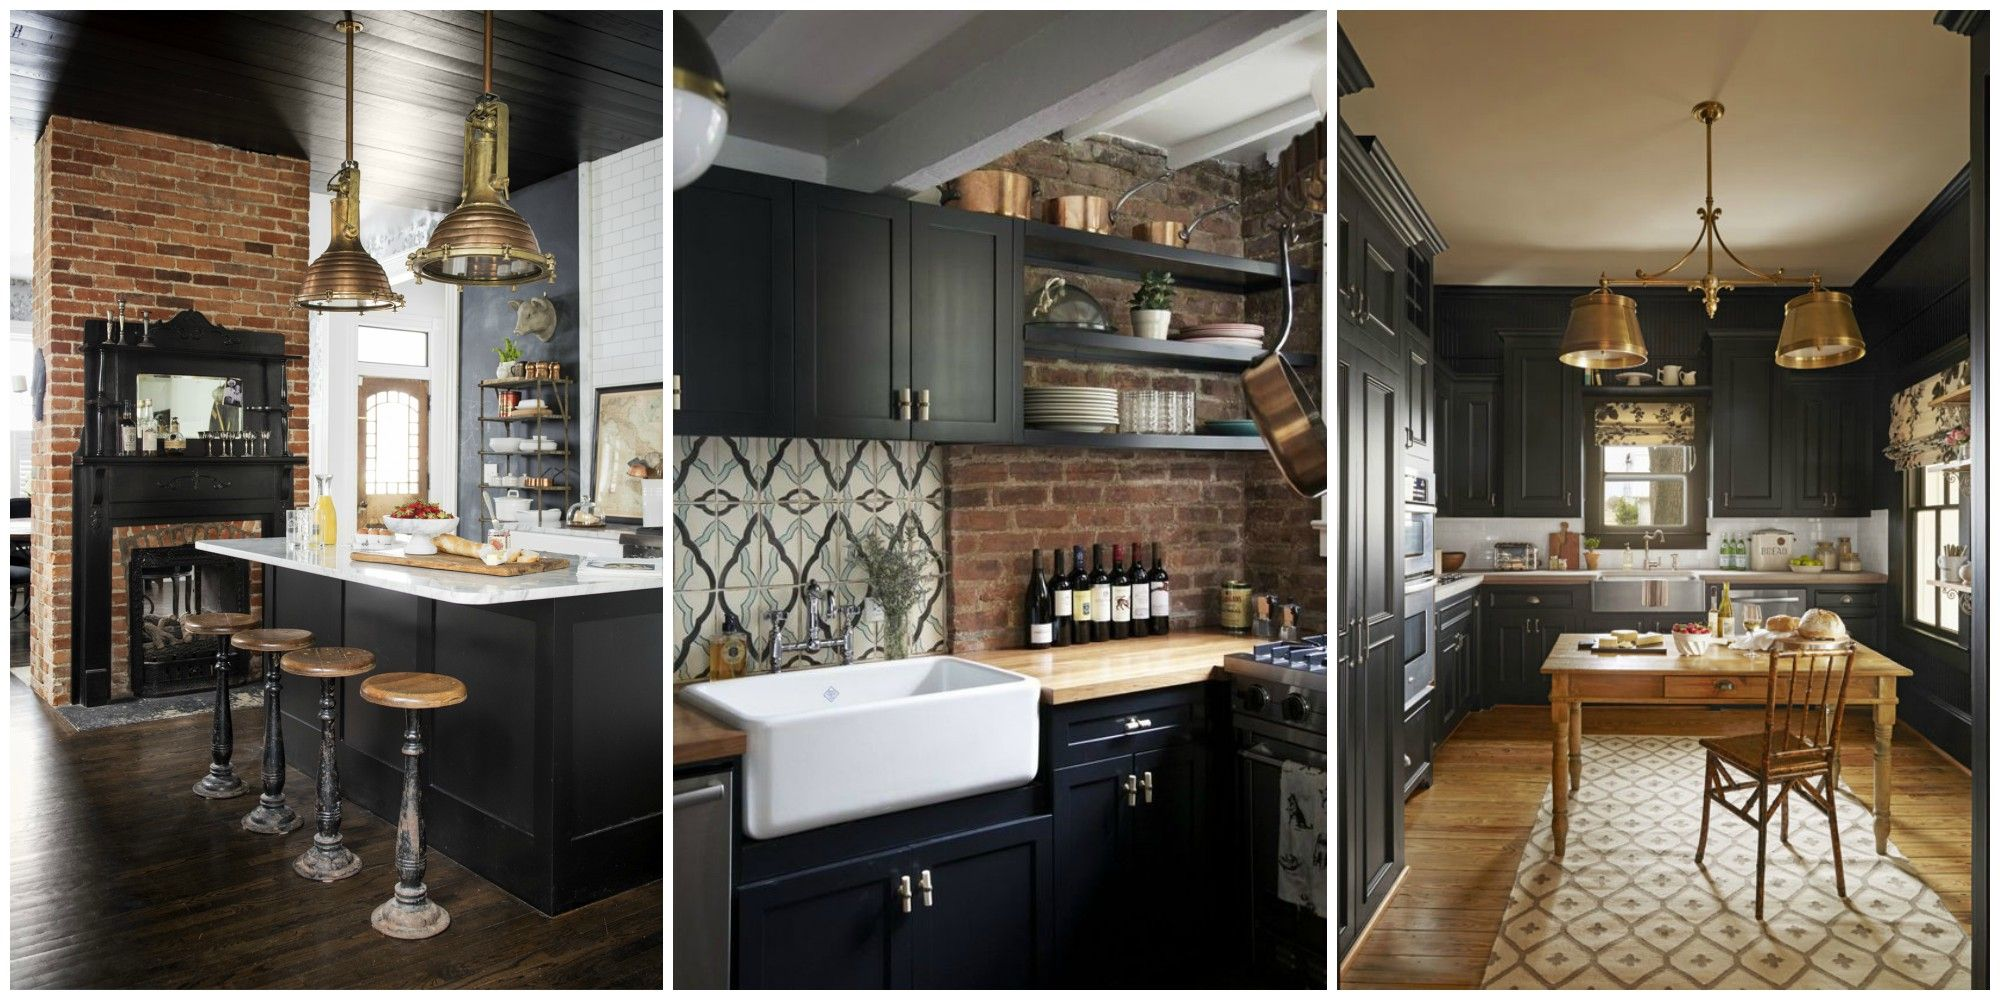 Creative small kitchen remodel ideas